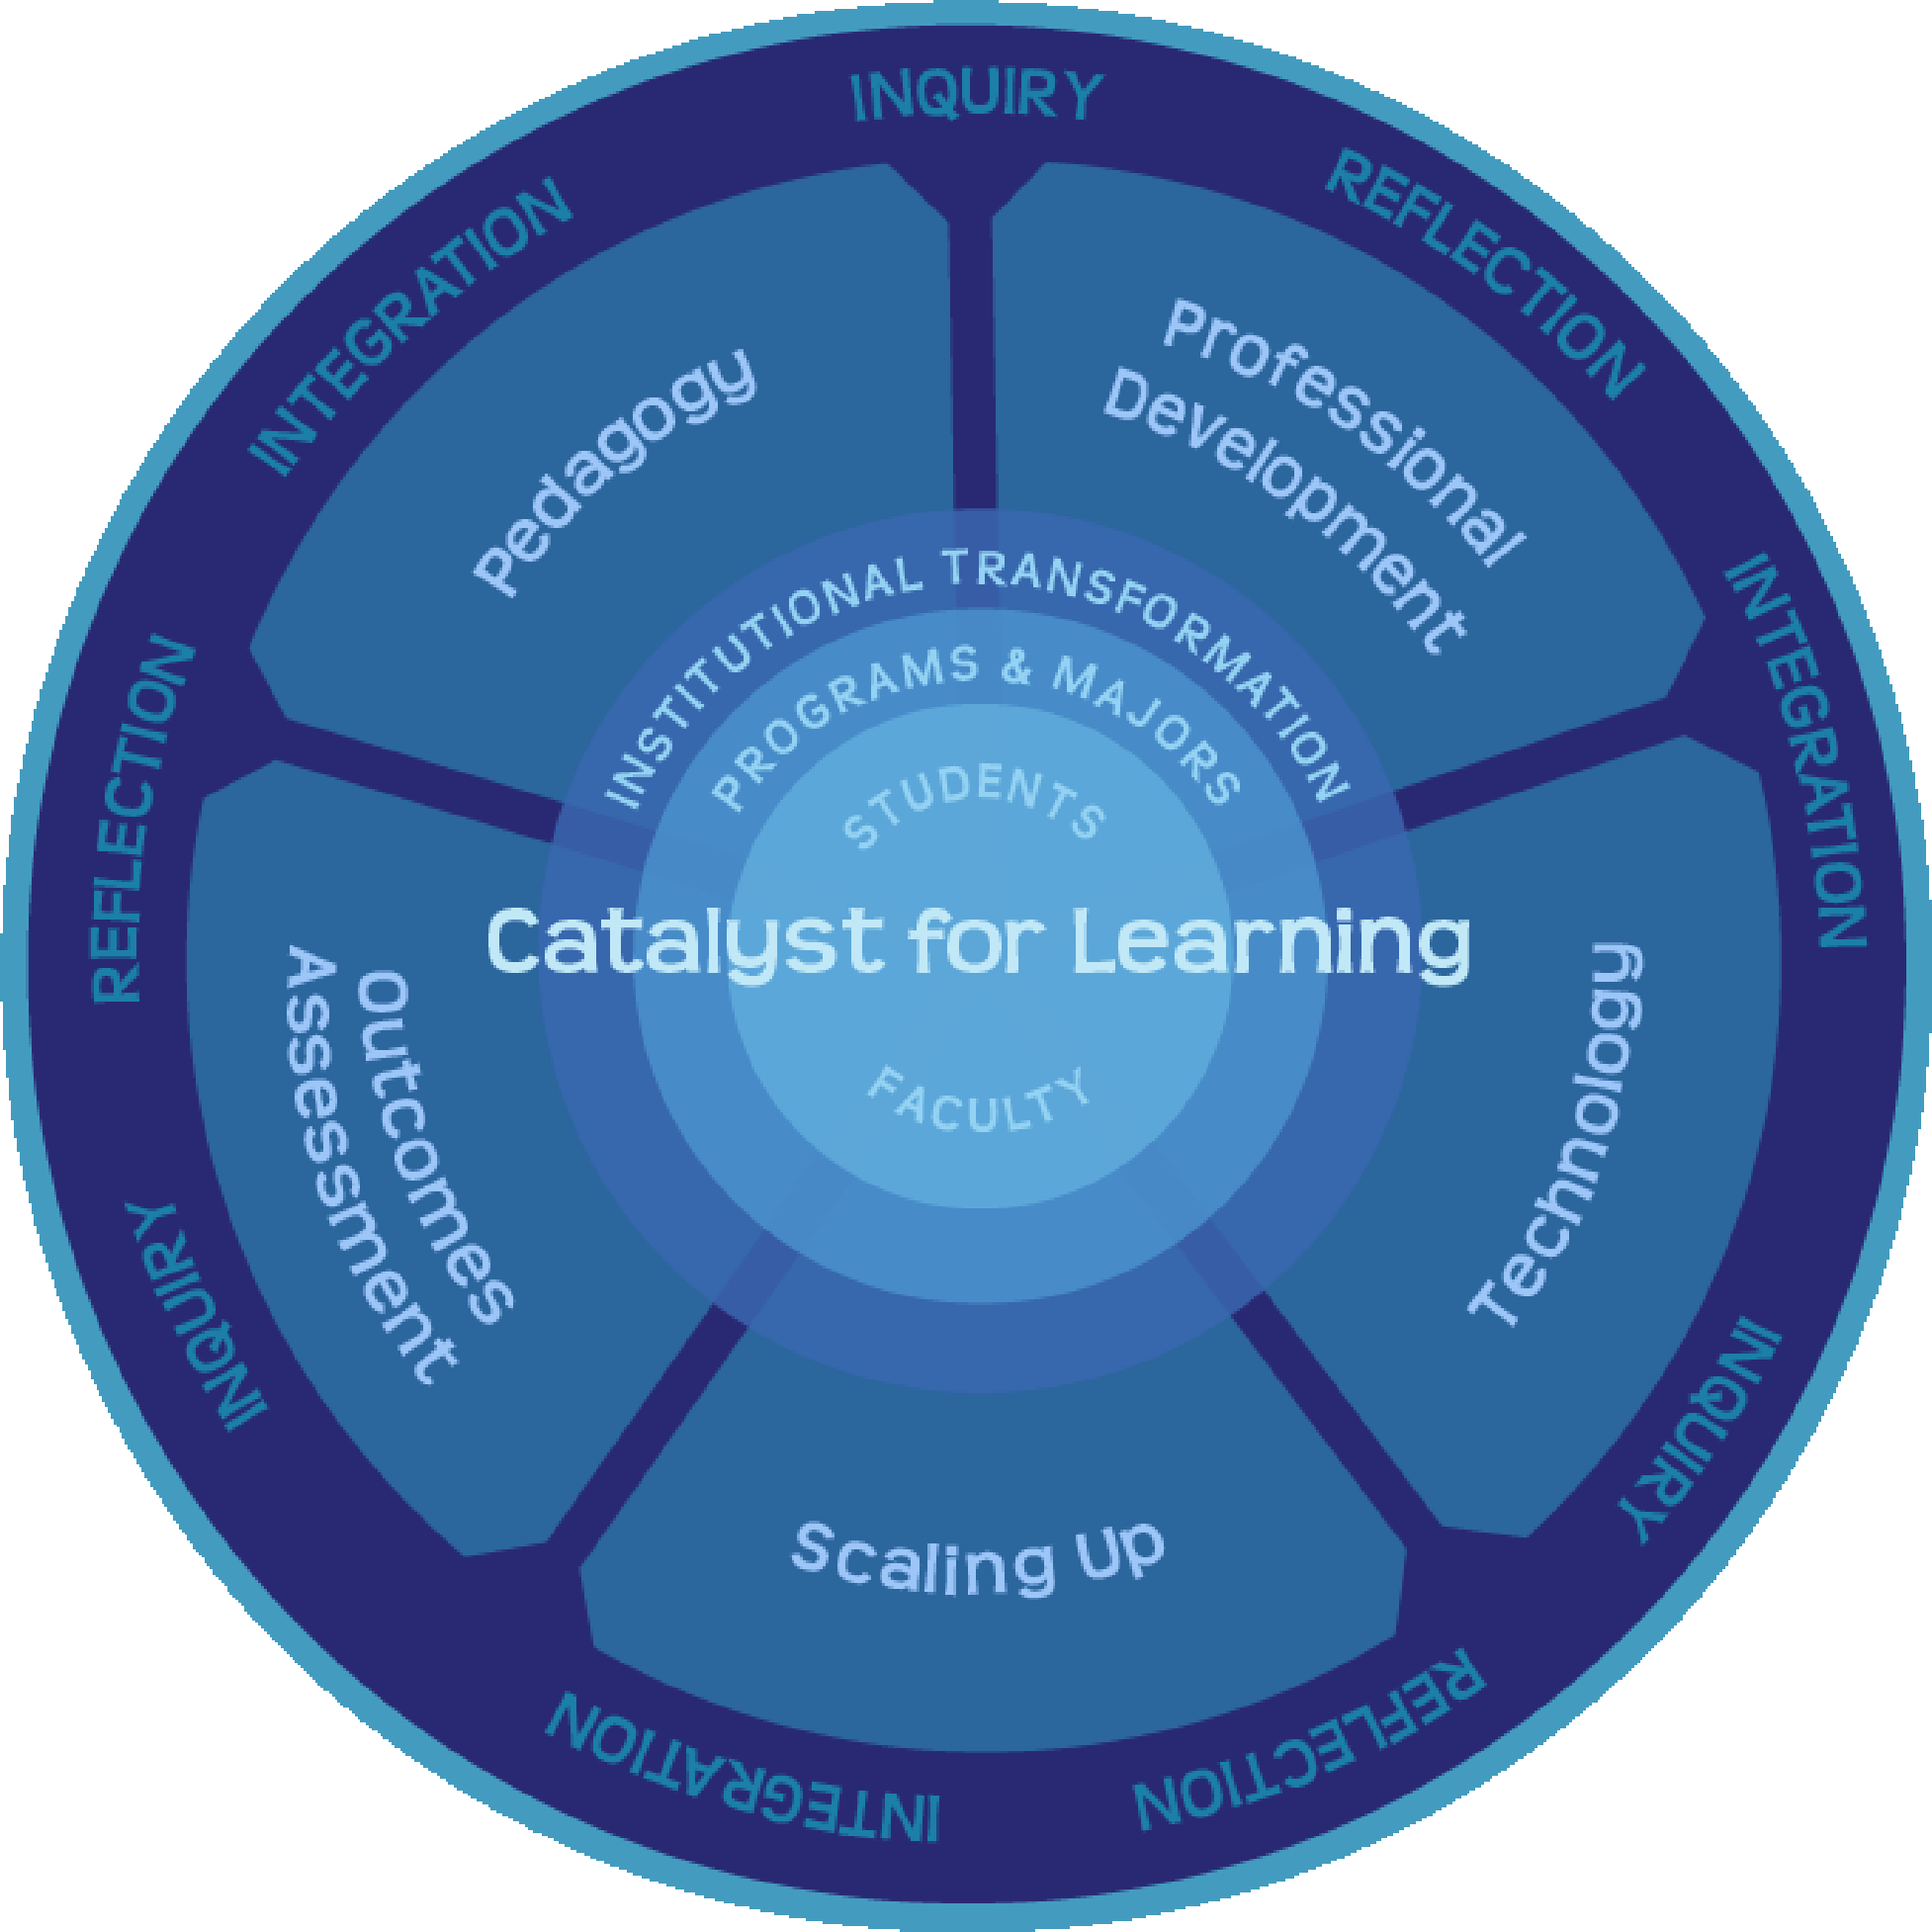 Eynon, Gambino, and Török What Difference Can eportfolio Make? 105 Figure 5 The Catalyst Framework agendas are well known, this third agenda for higher education is perhaps equally important.